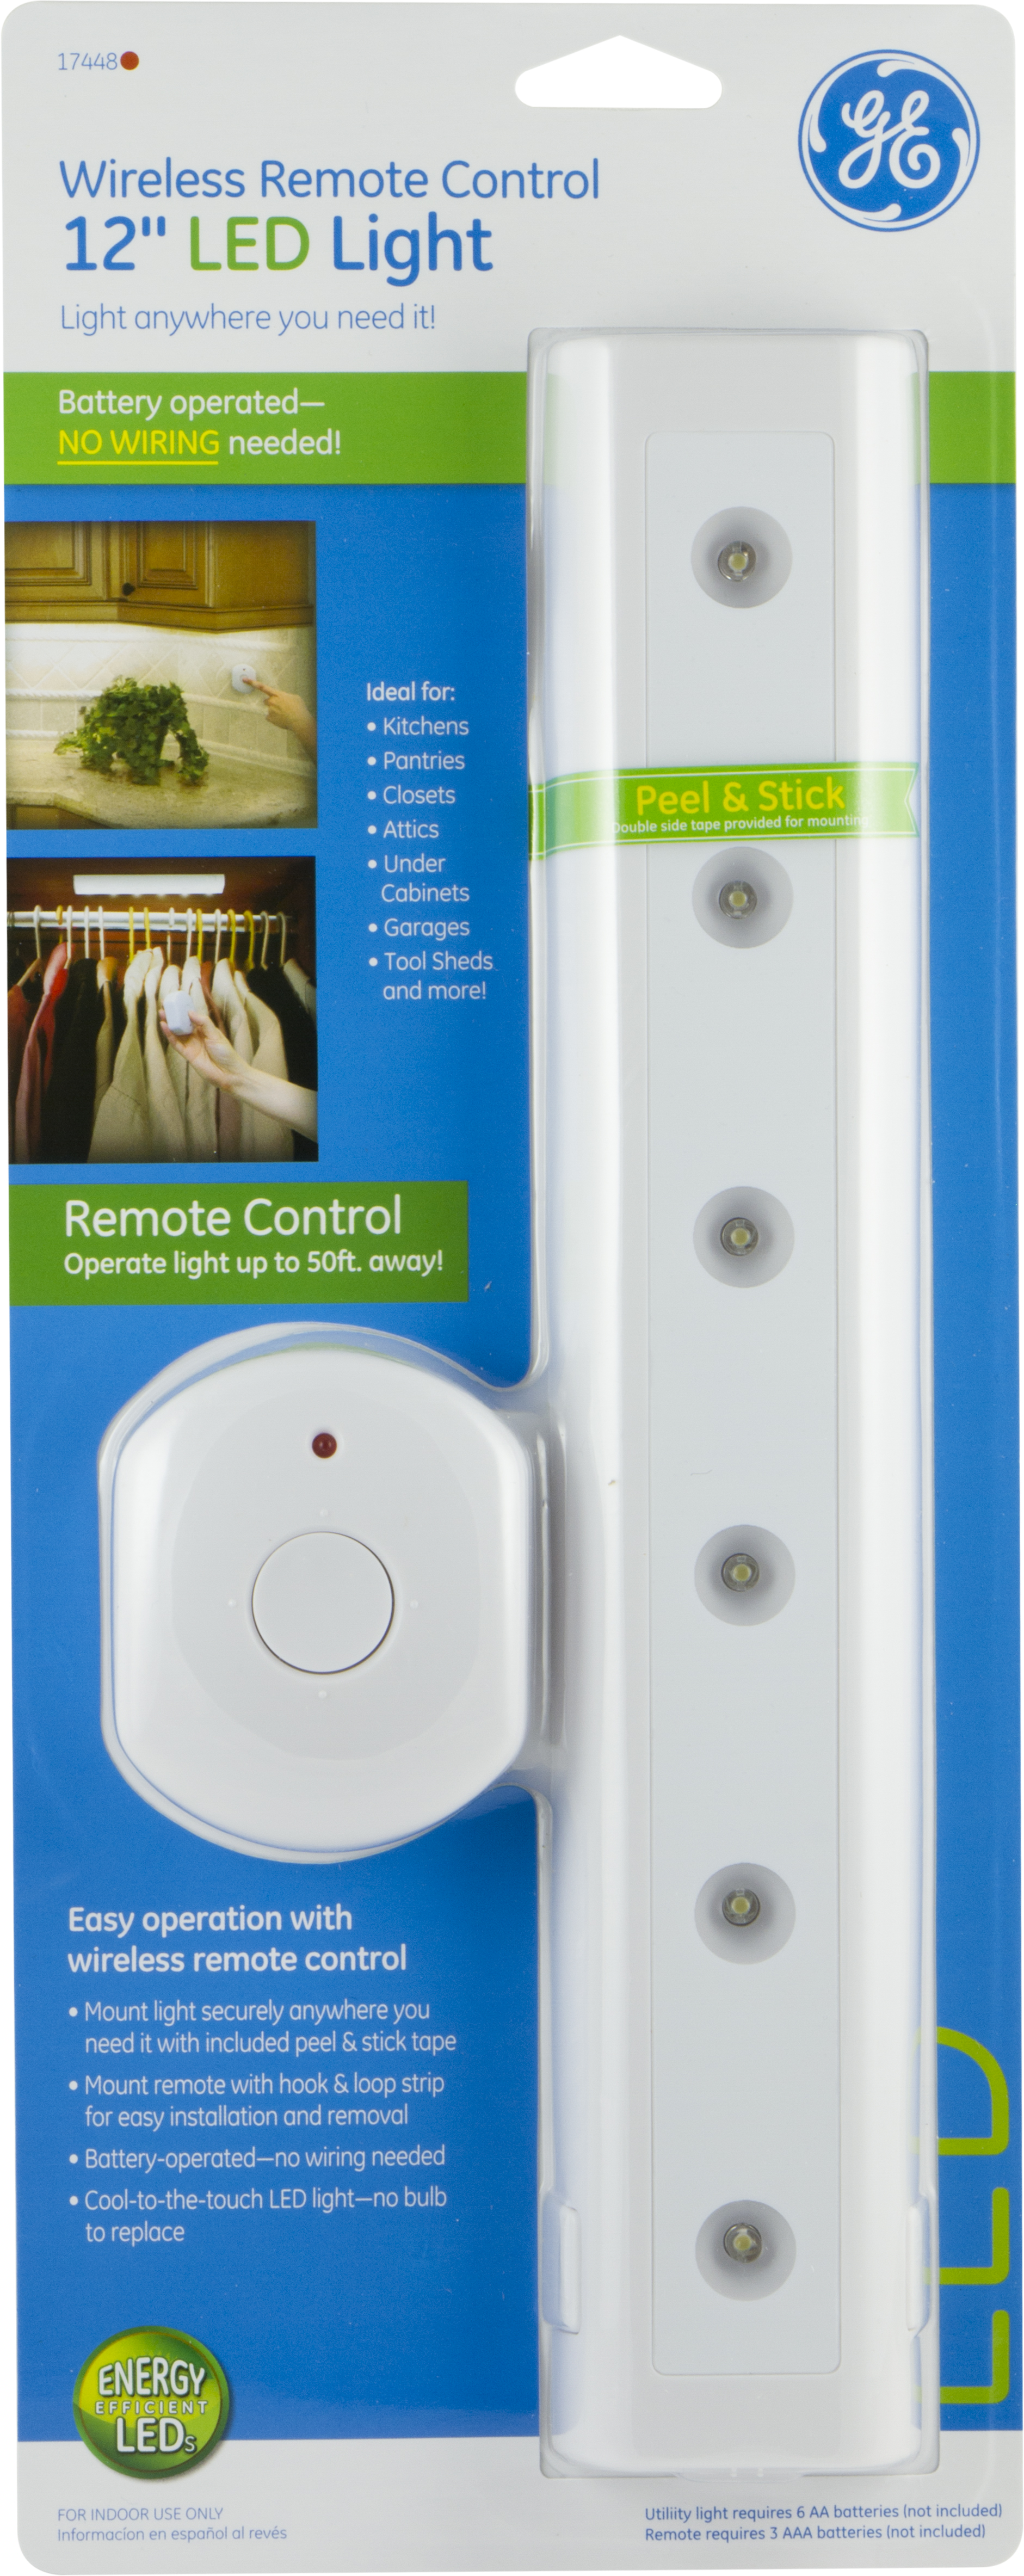 Recessed Lighting Installations Led Canned Spark Gen3 Electric 215 3525963 Ceiling Fan Light Switch And Controller Ge Wireless 12 Inch Remote Control